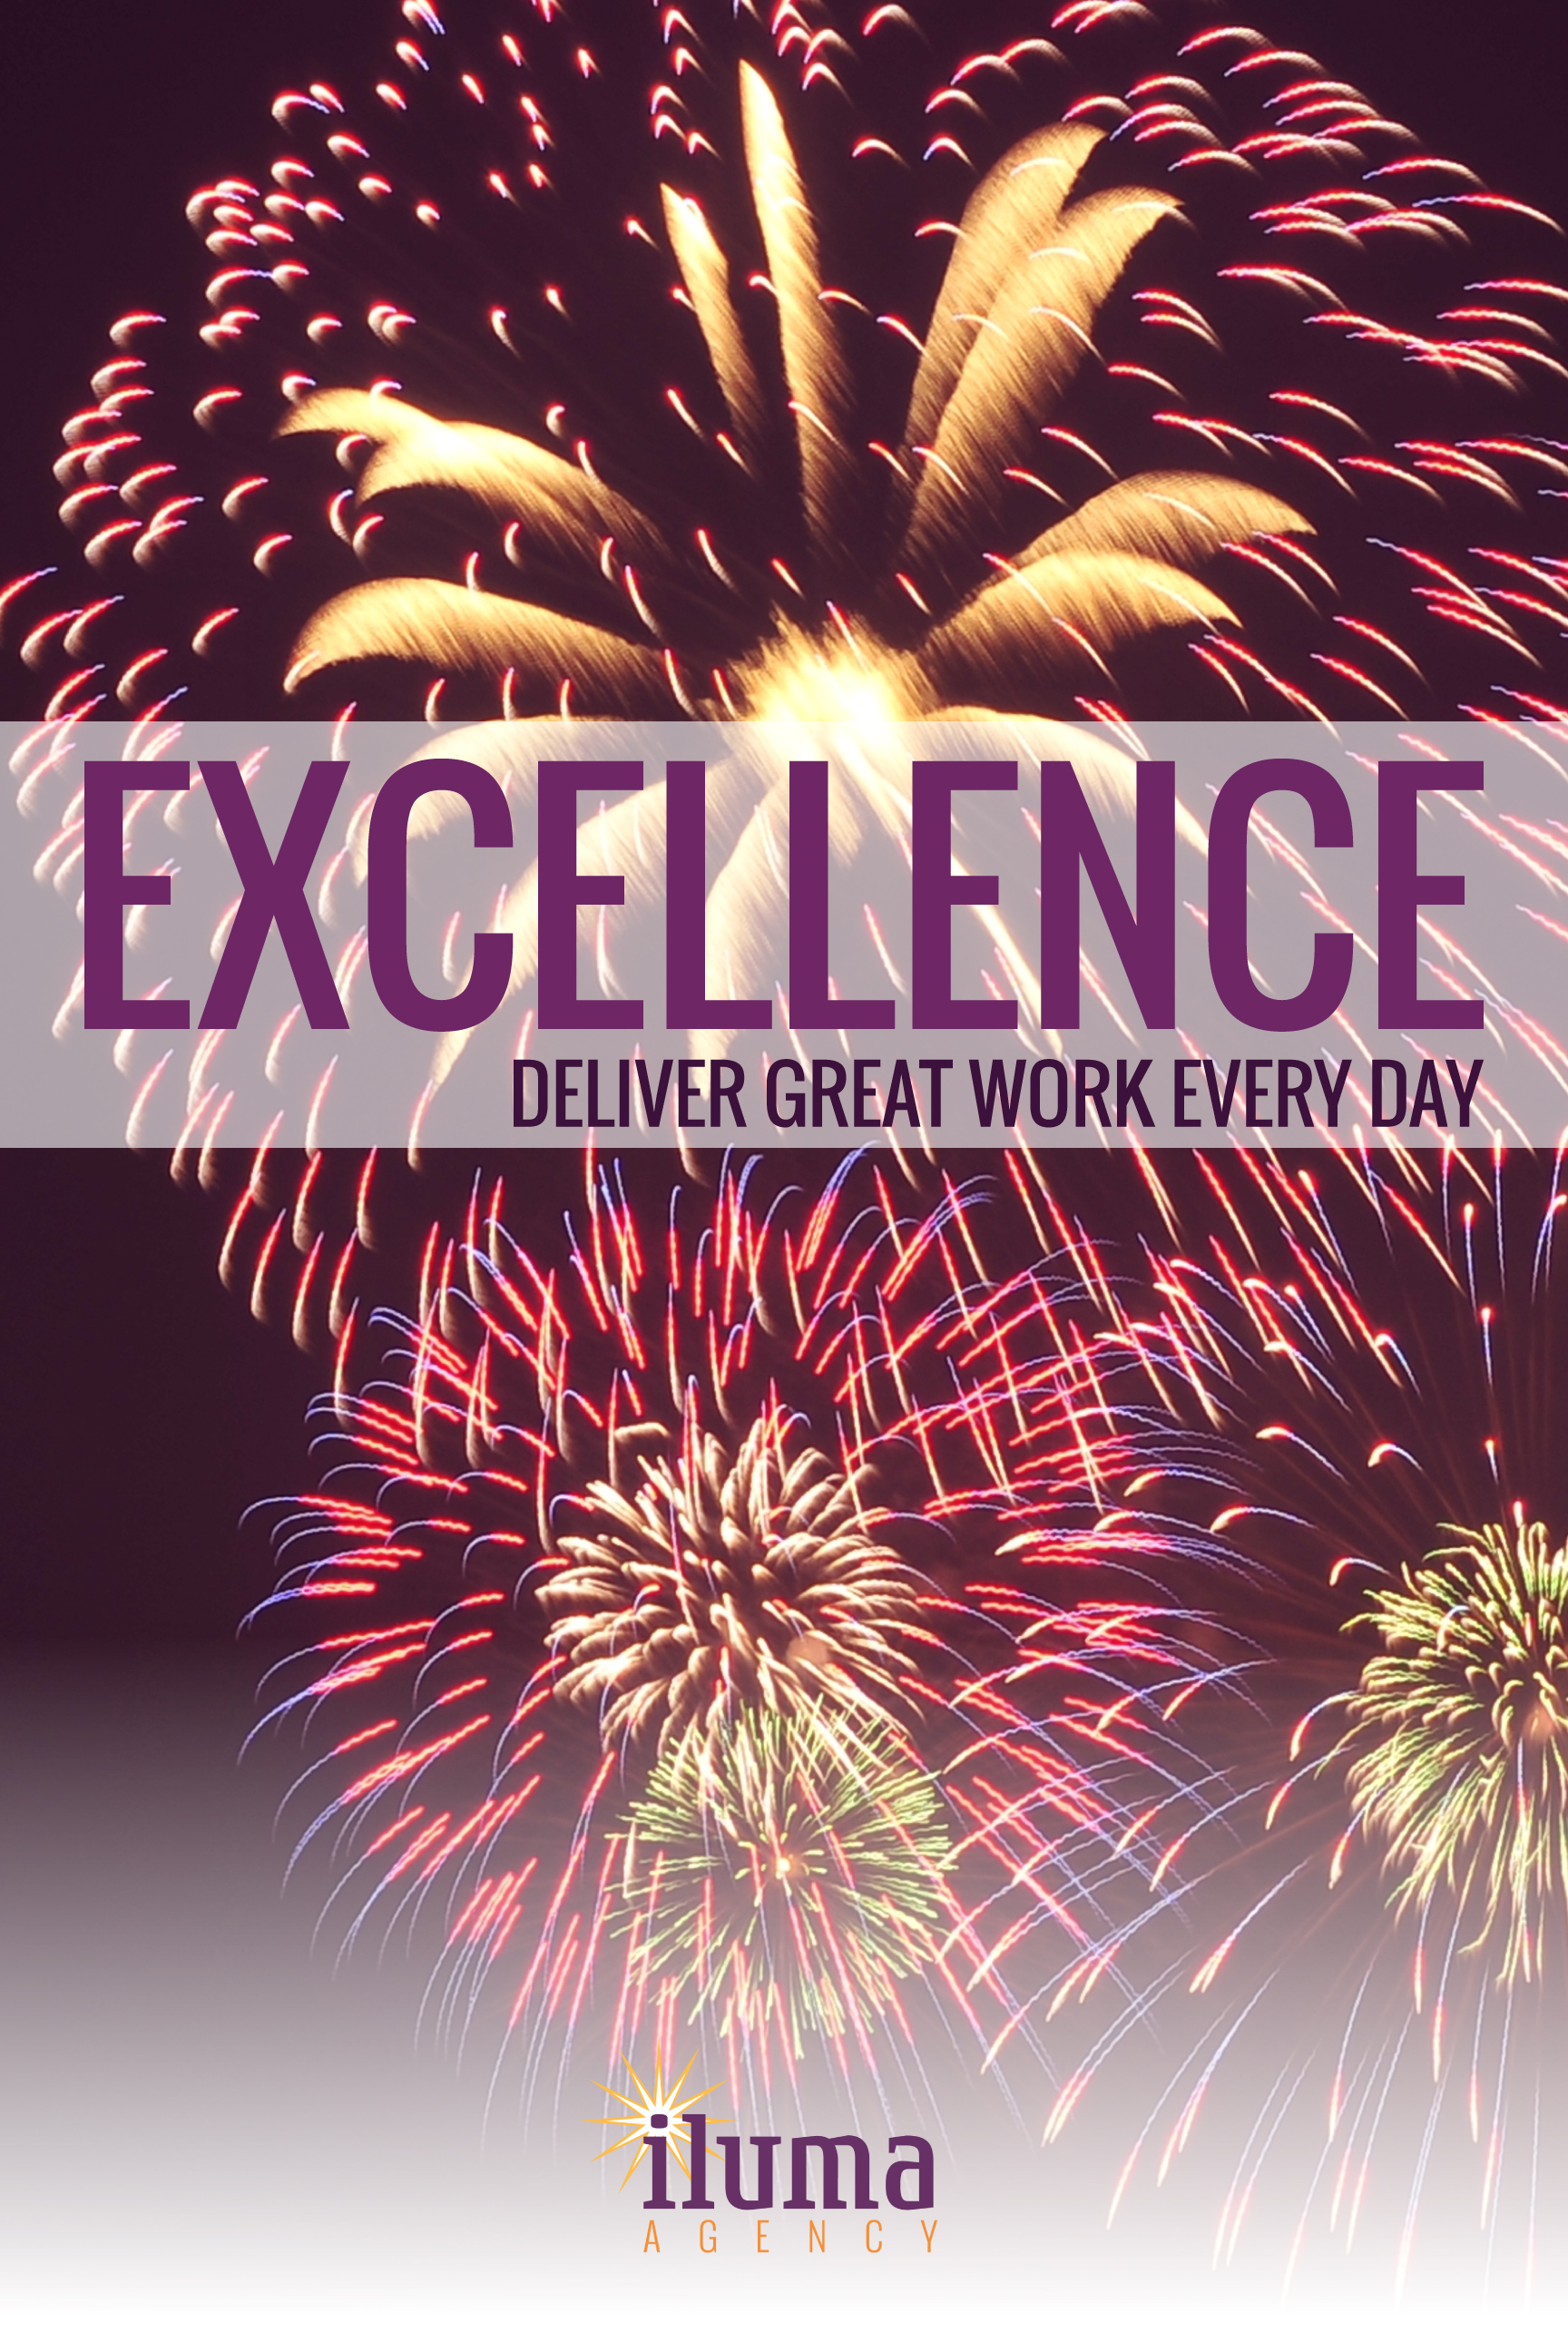 Excellence_24x36_Proof04.jpg